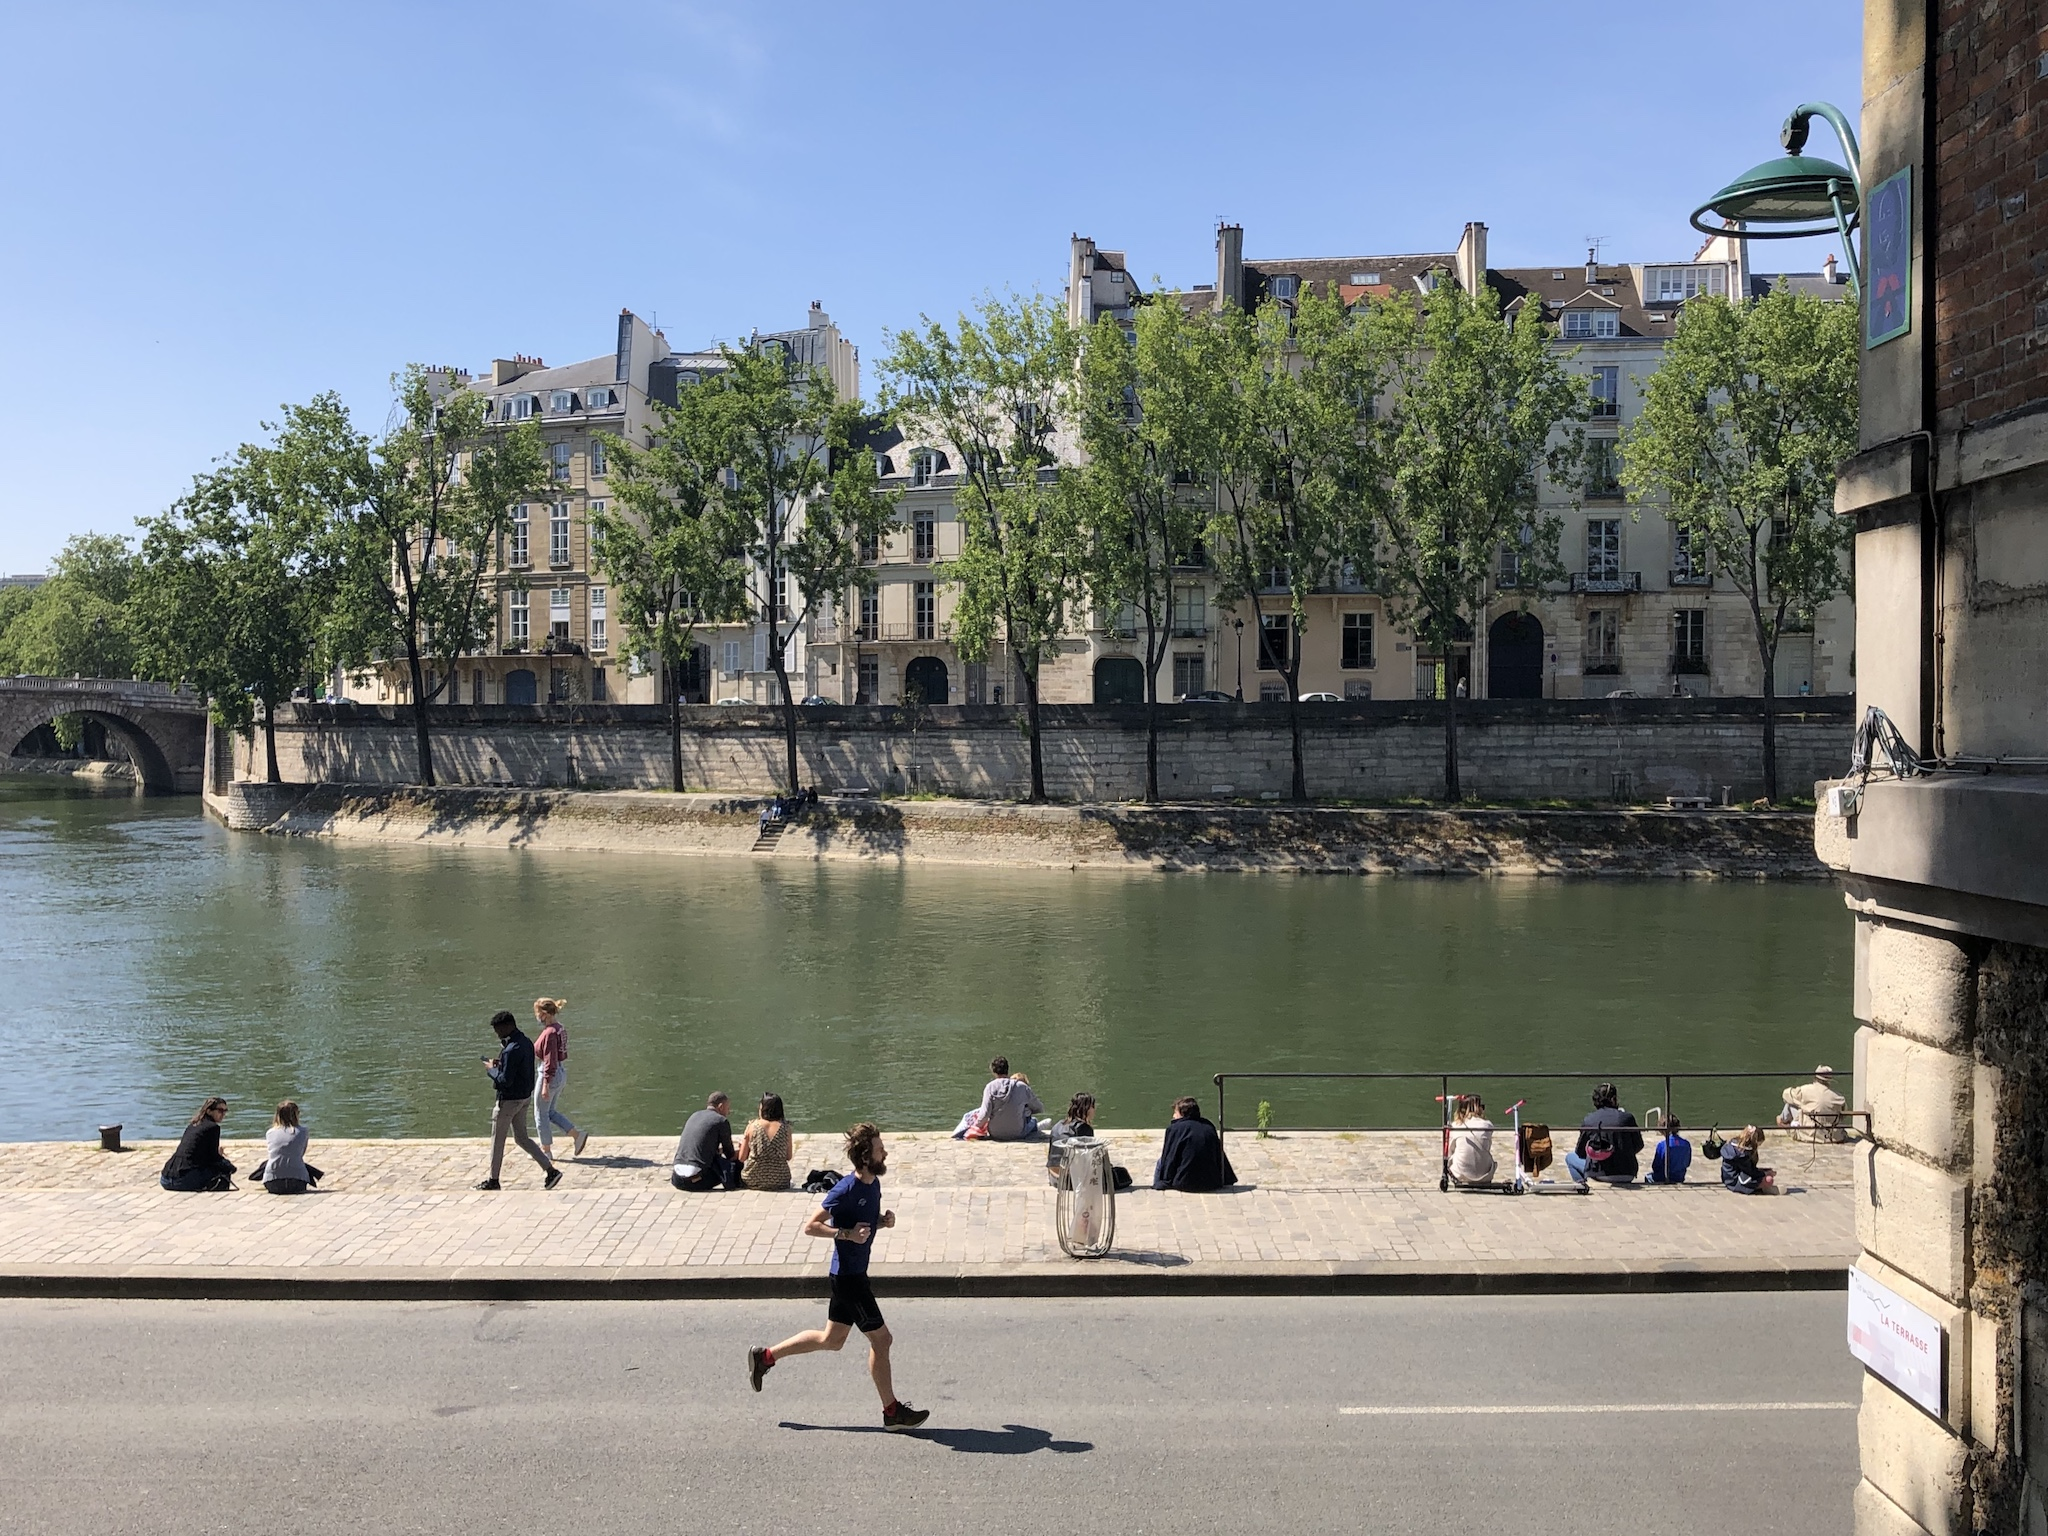 People sit, while distanced, and a man runs along the Seine in Paris on a sunny day after the deconfinement.